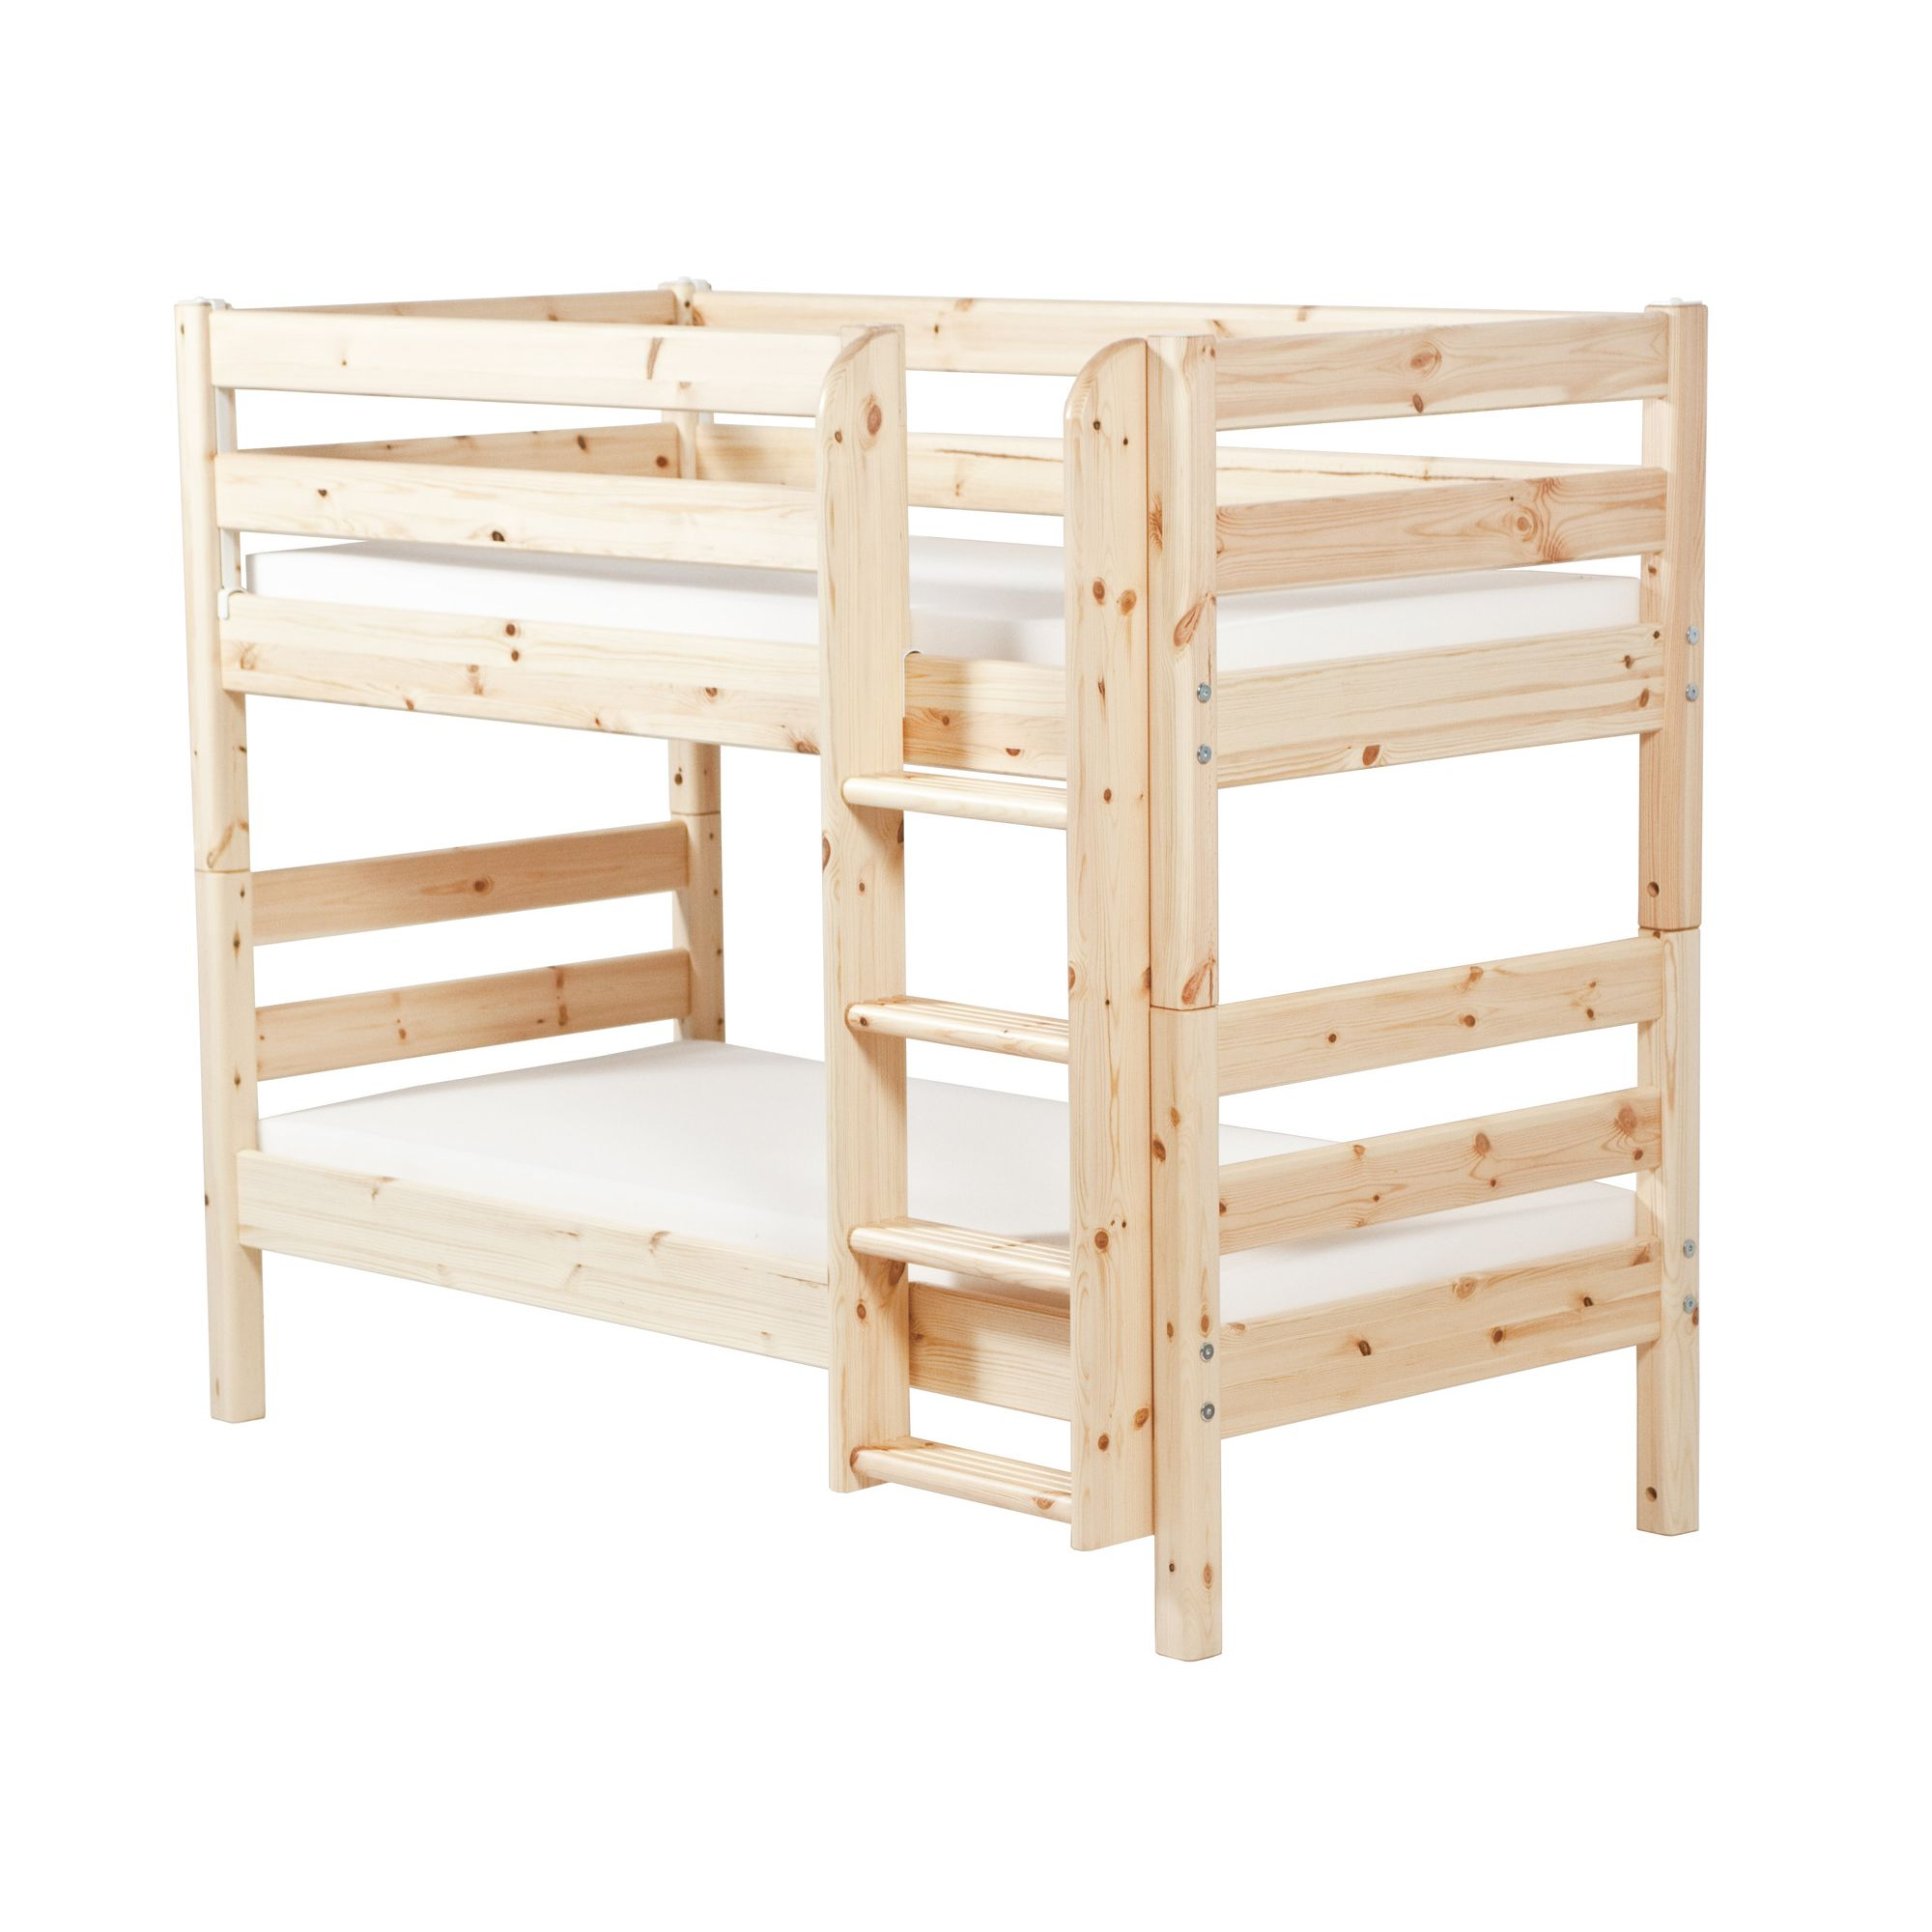 Flexa Classic Bunk Bed with Straight Ladder - Natural Lacquer at Tesco Direct